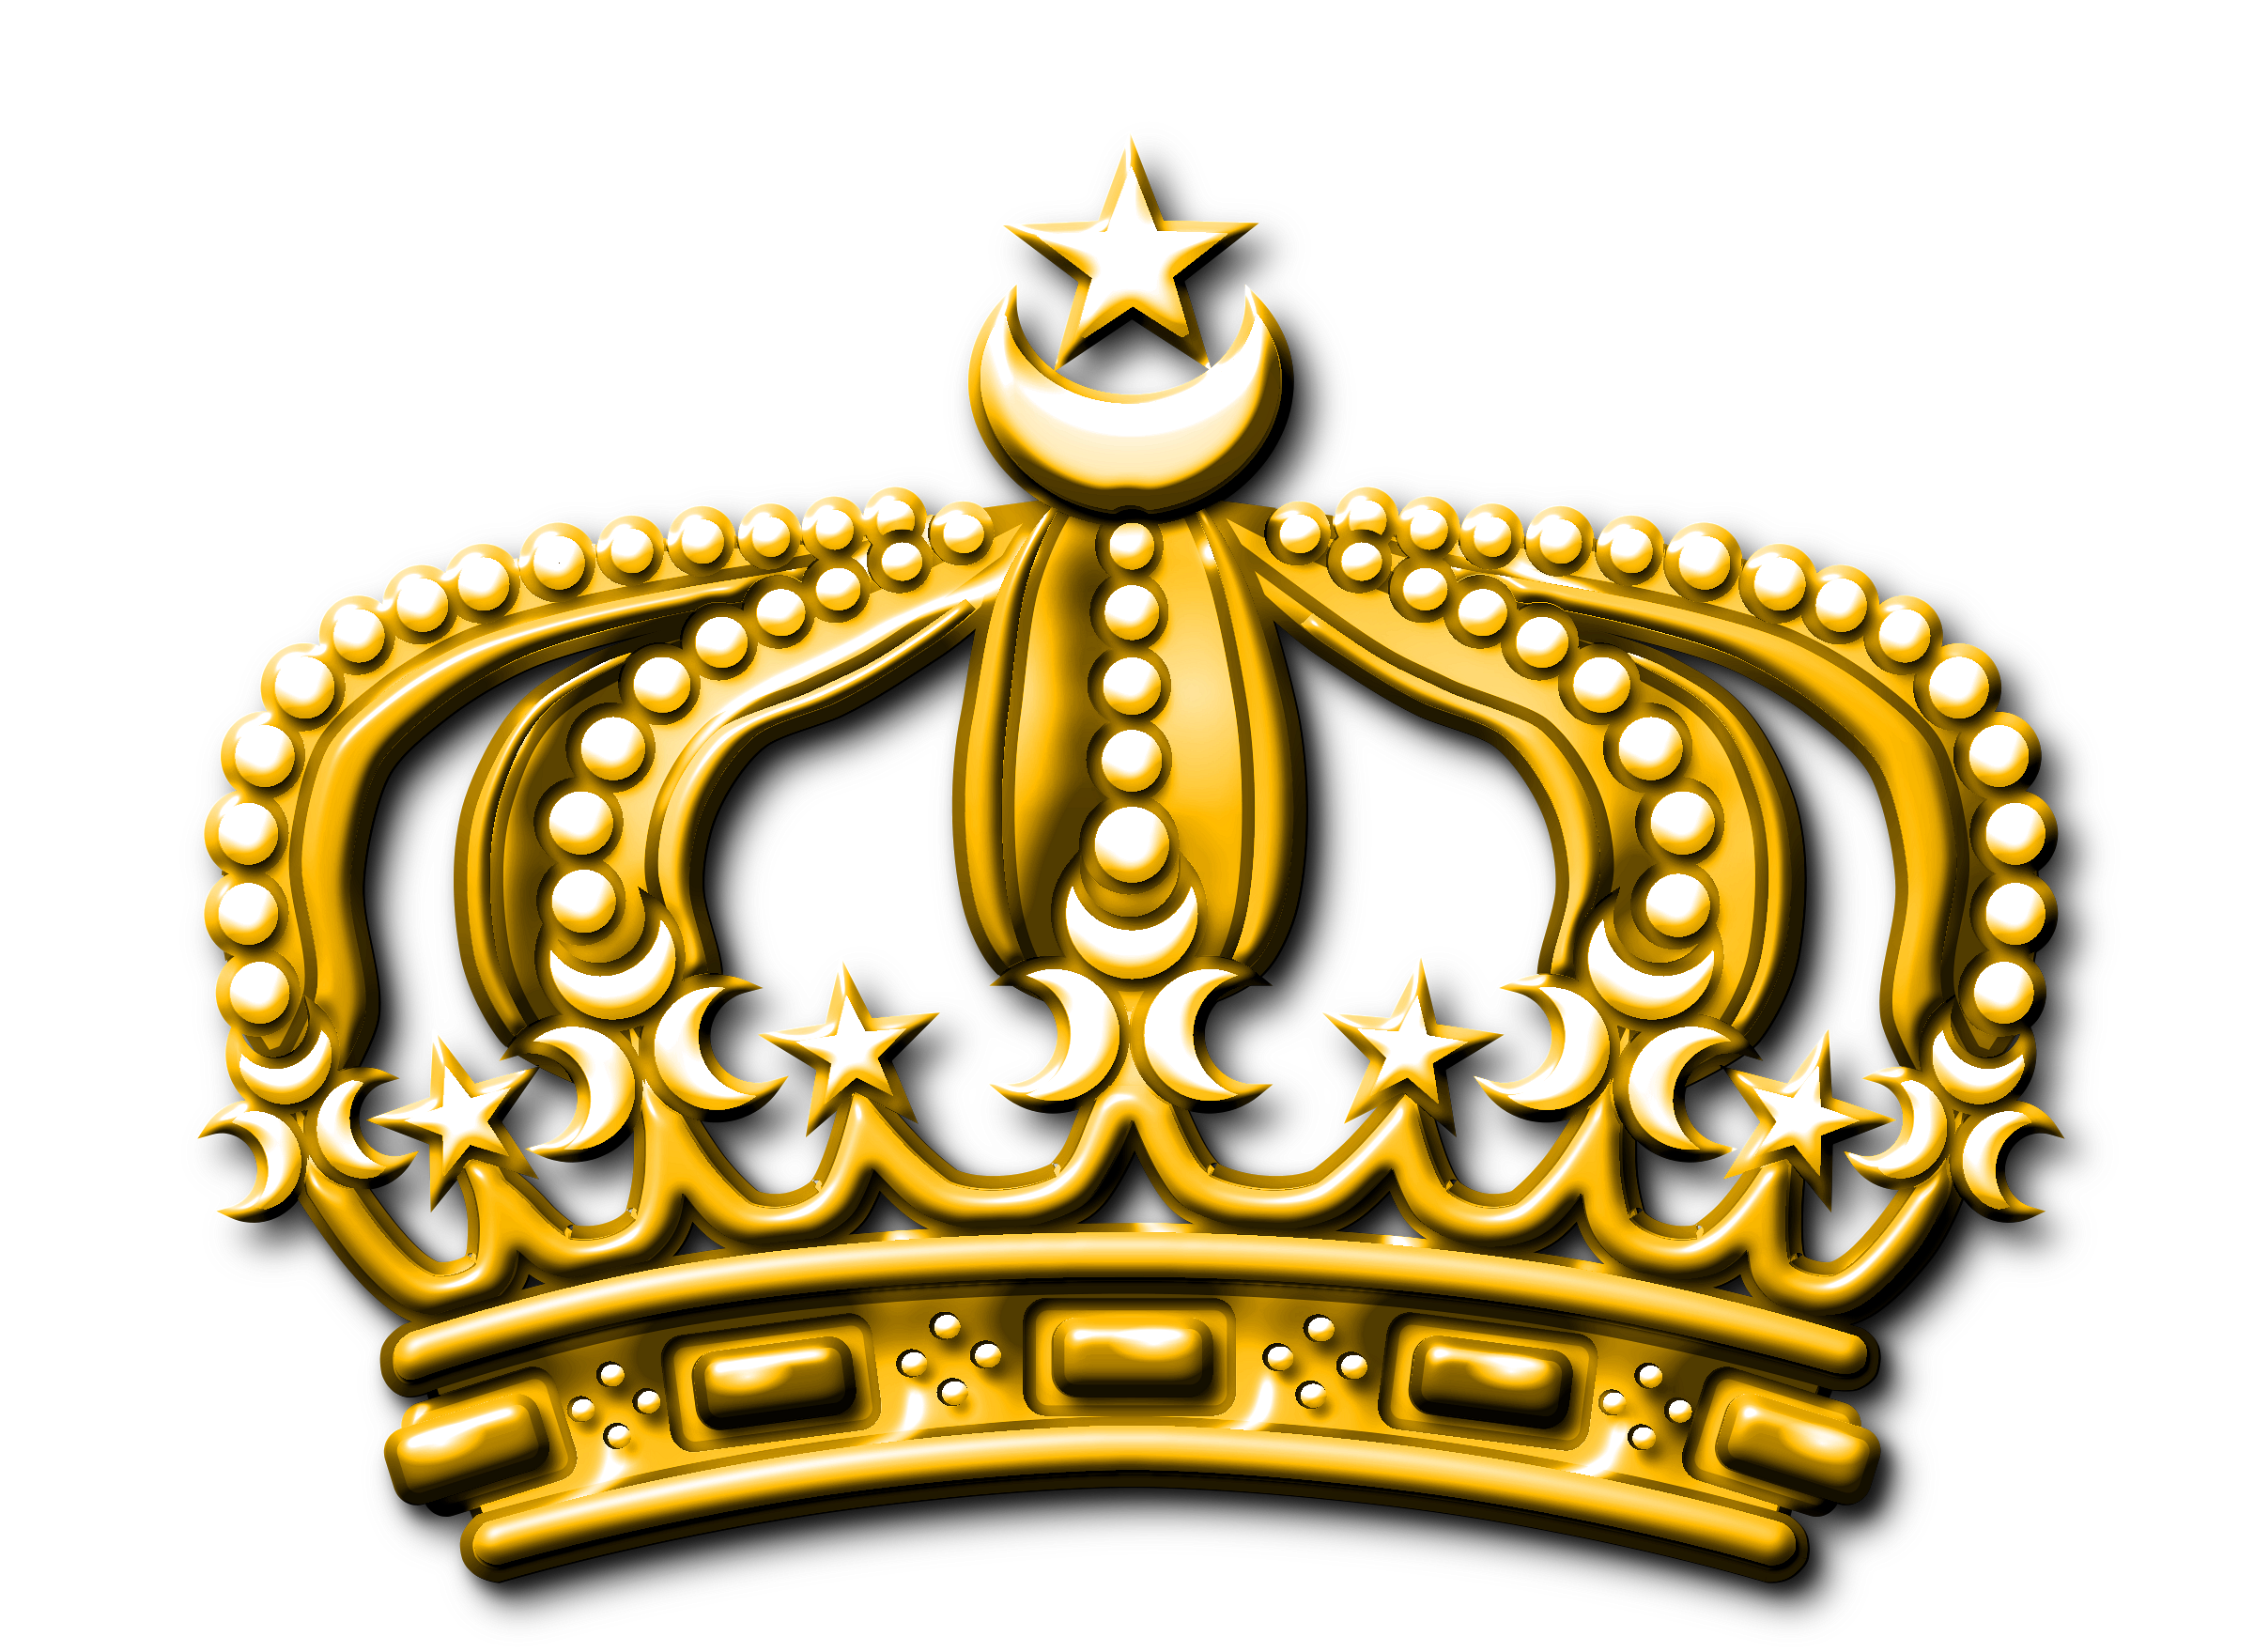 9 Best Image of Gold King Crown.